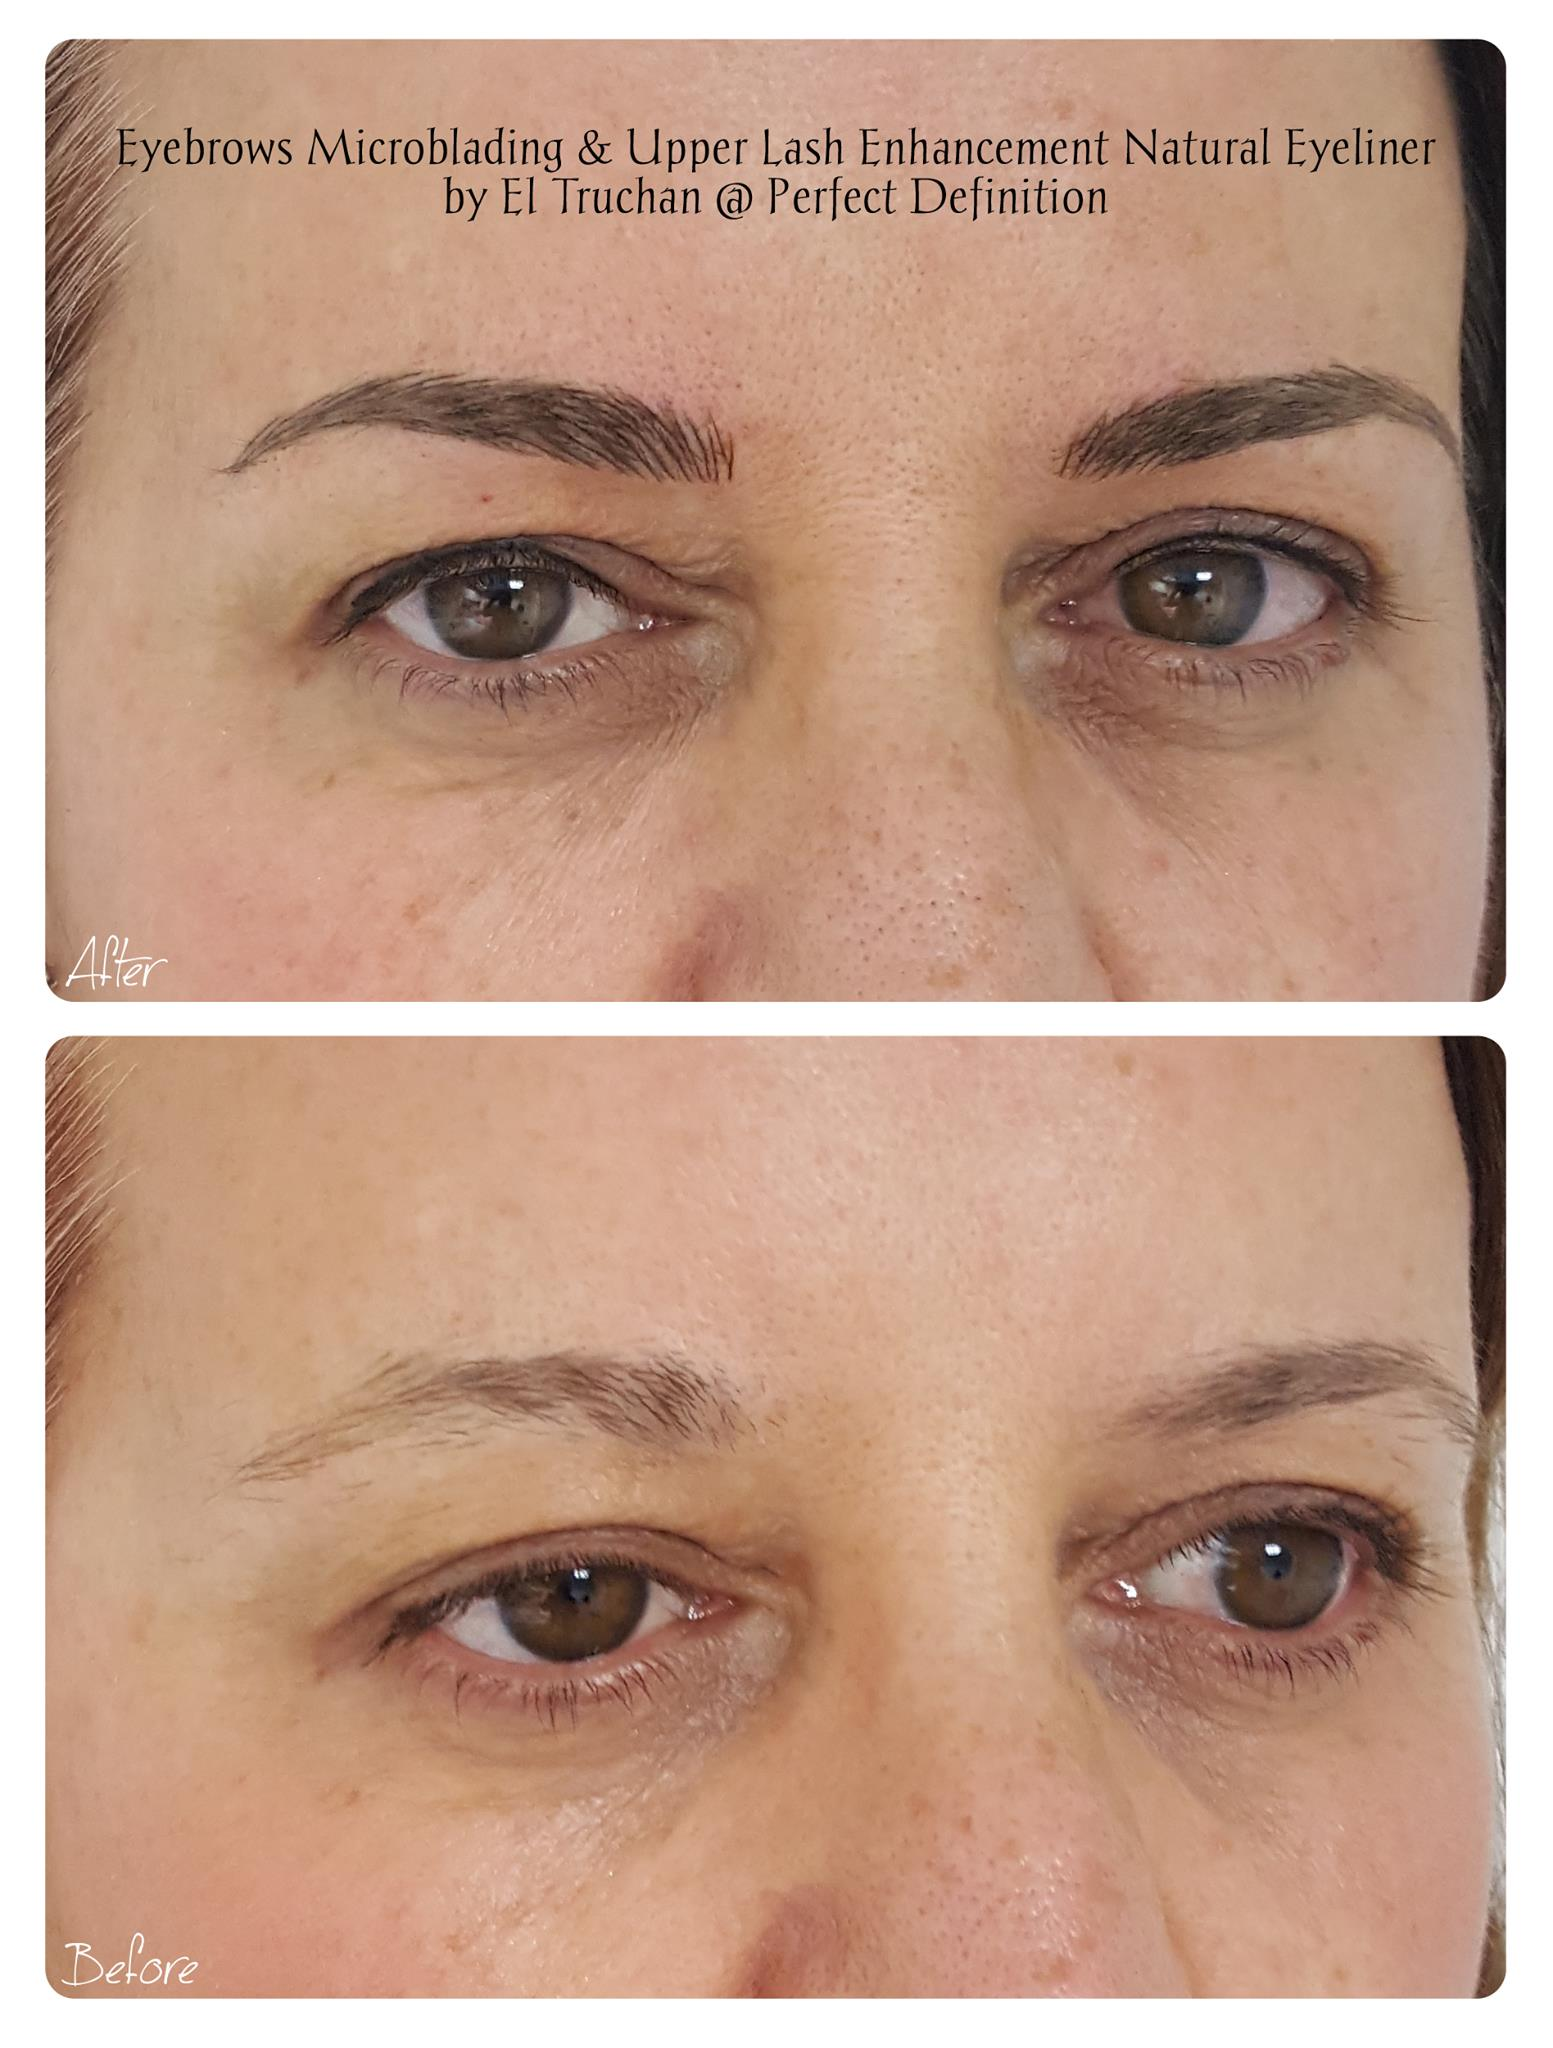 Lash Enhancement Eyeliner and Eyebrows Microblading